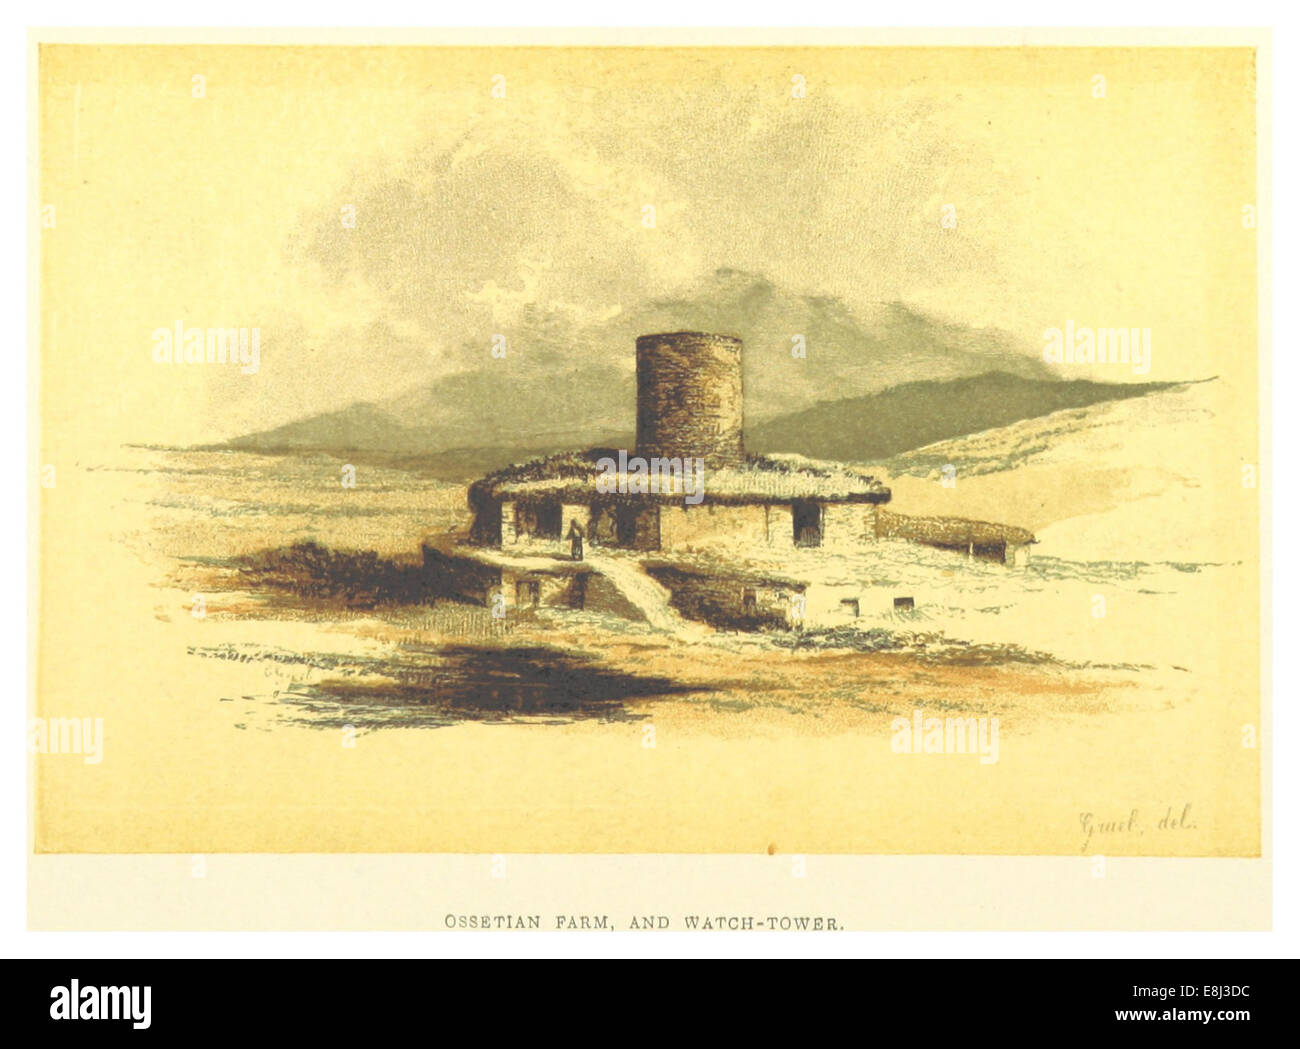 (BL) OSSETIAN FARM, WITH WATCH-TOWER - Stock Image